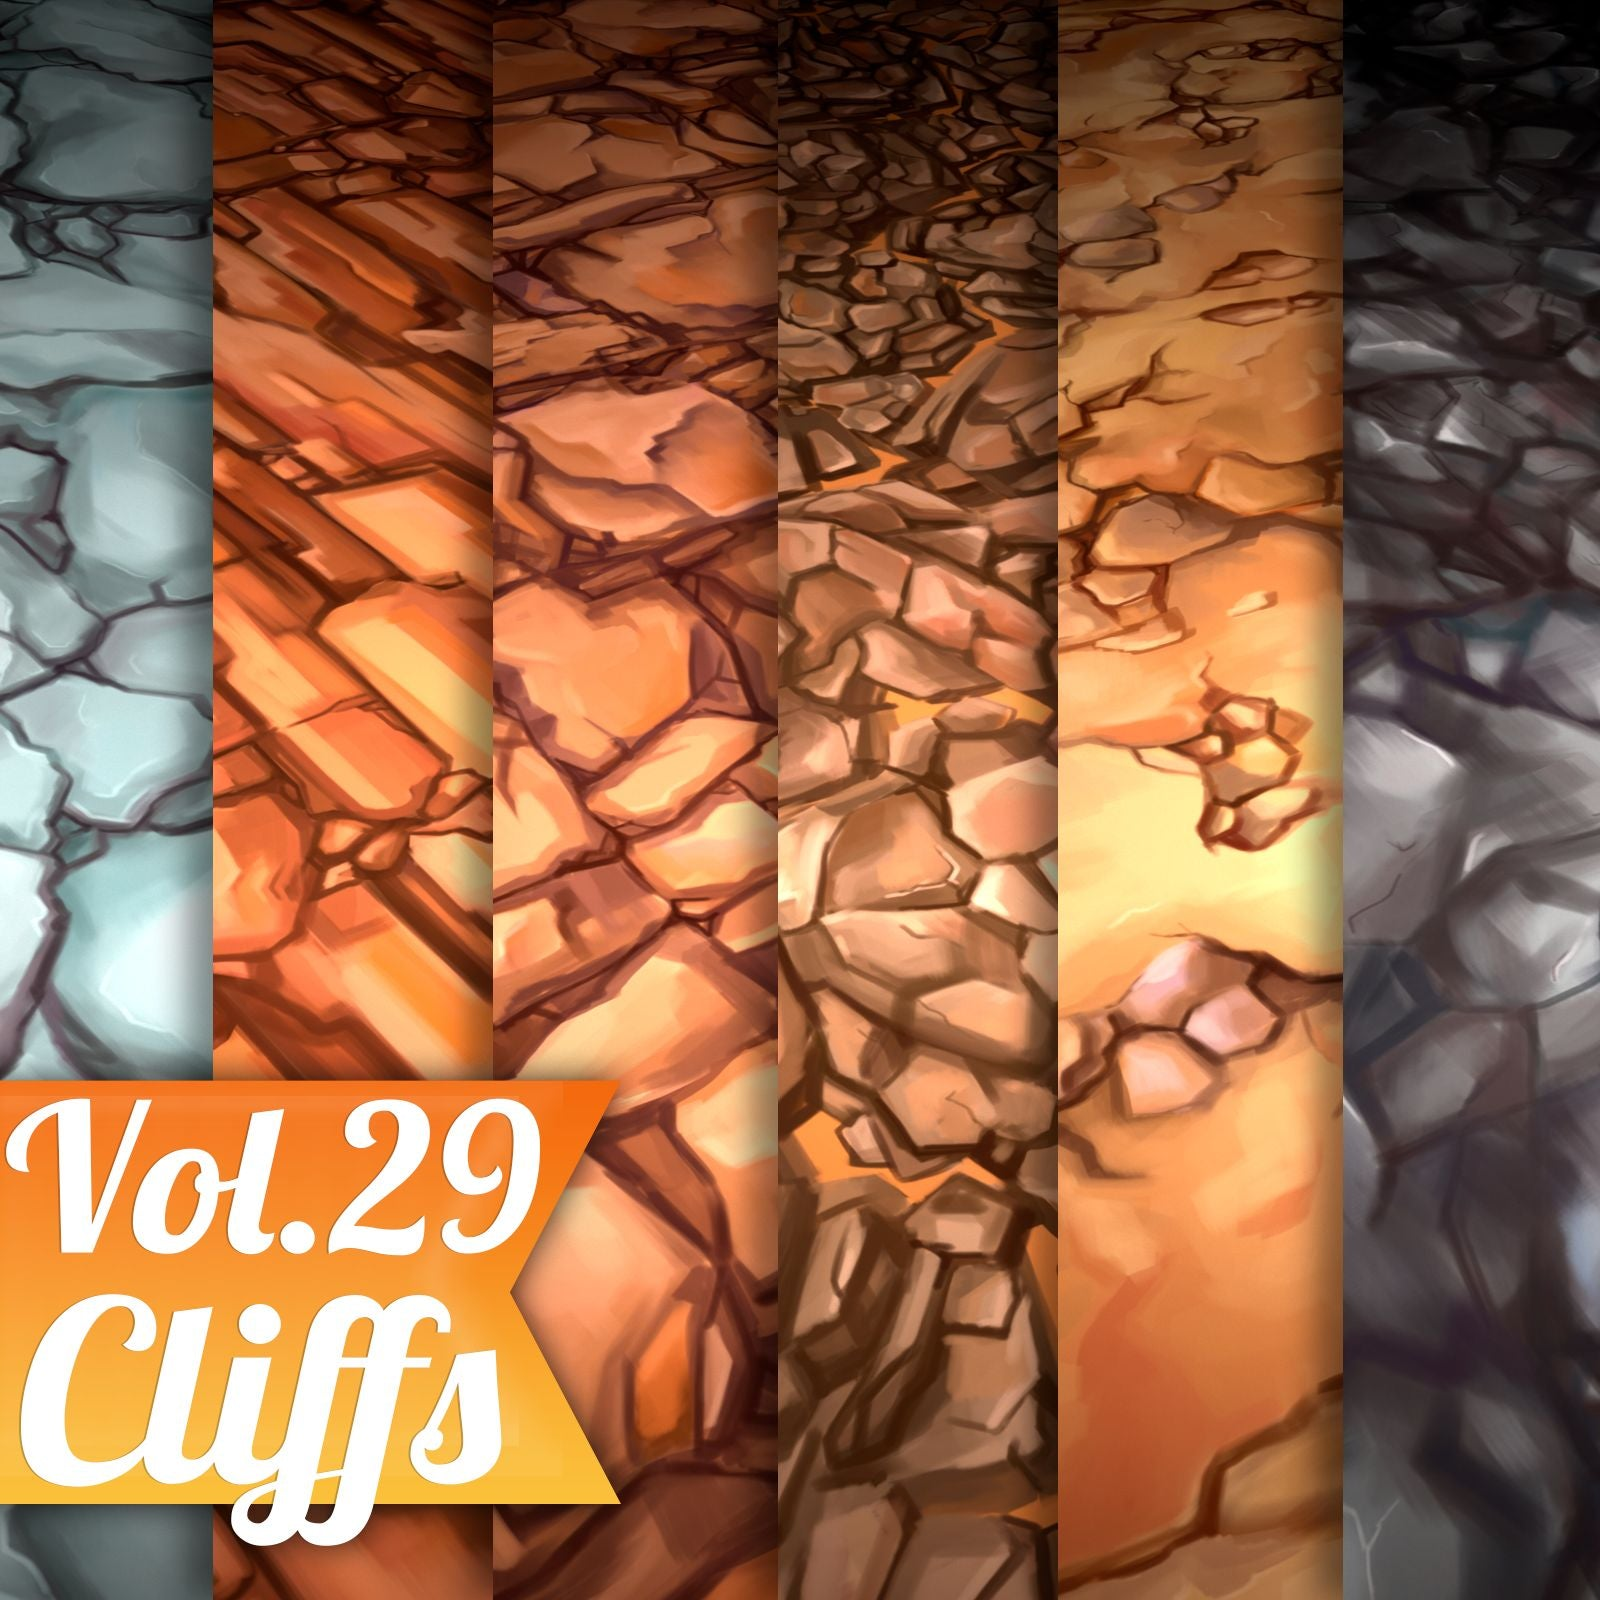 Cliffs Vol.29 - Hand Painted Texture - LowlyPoly